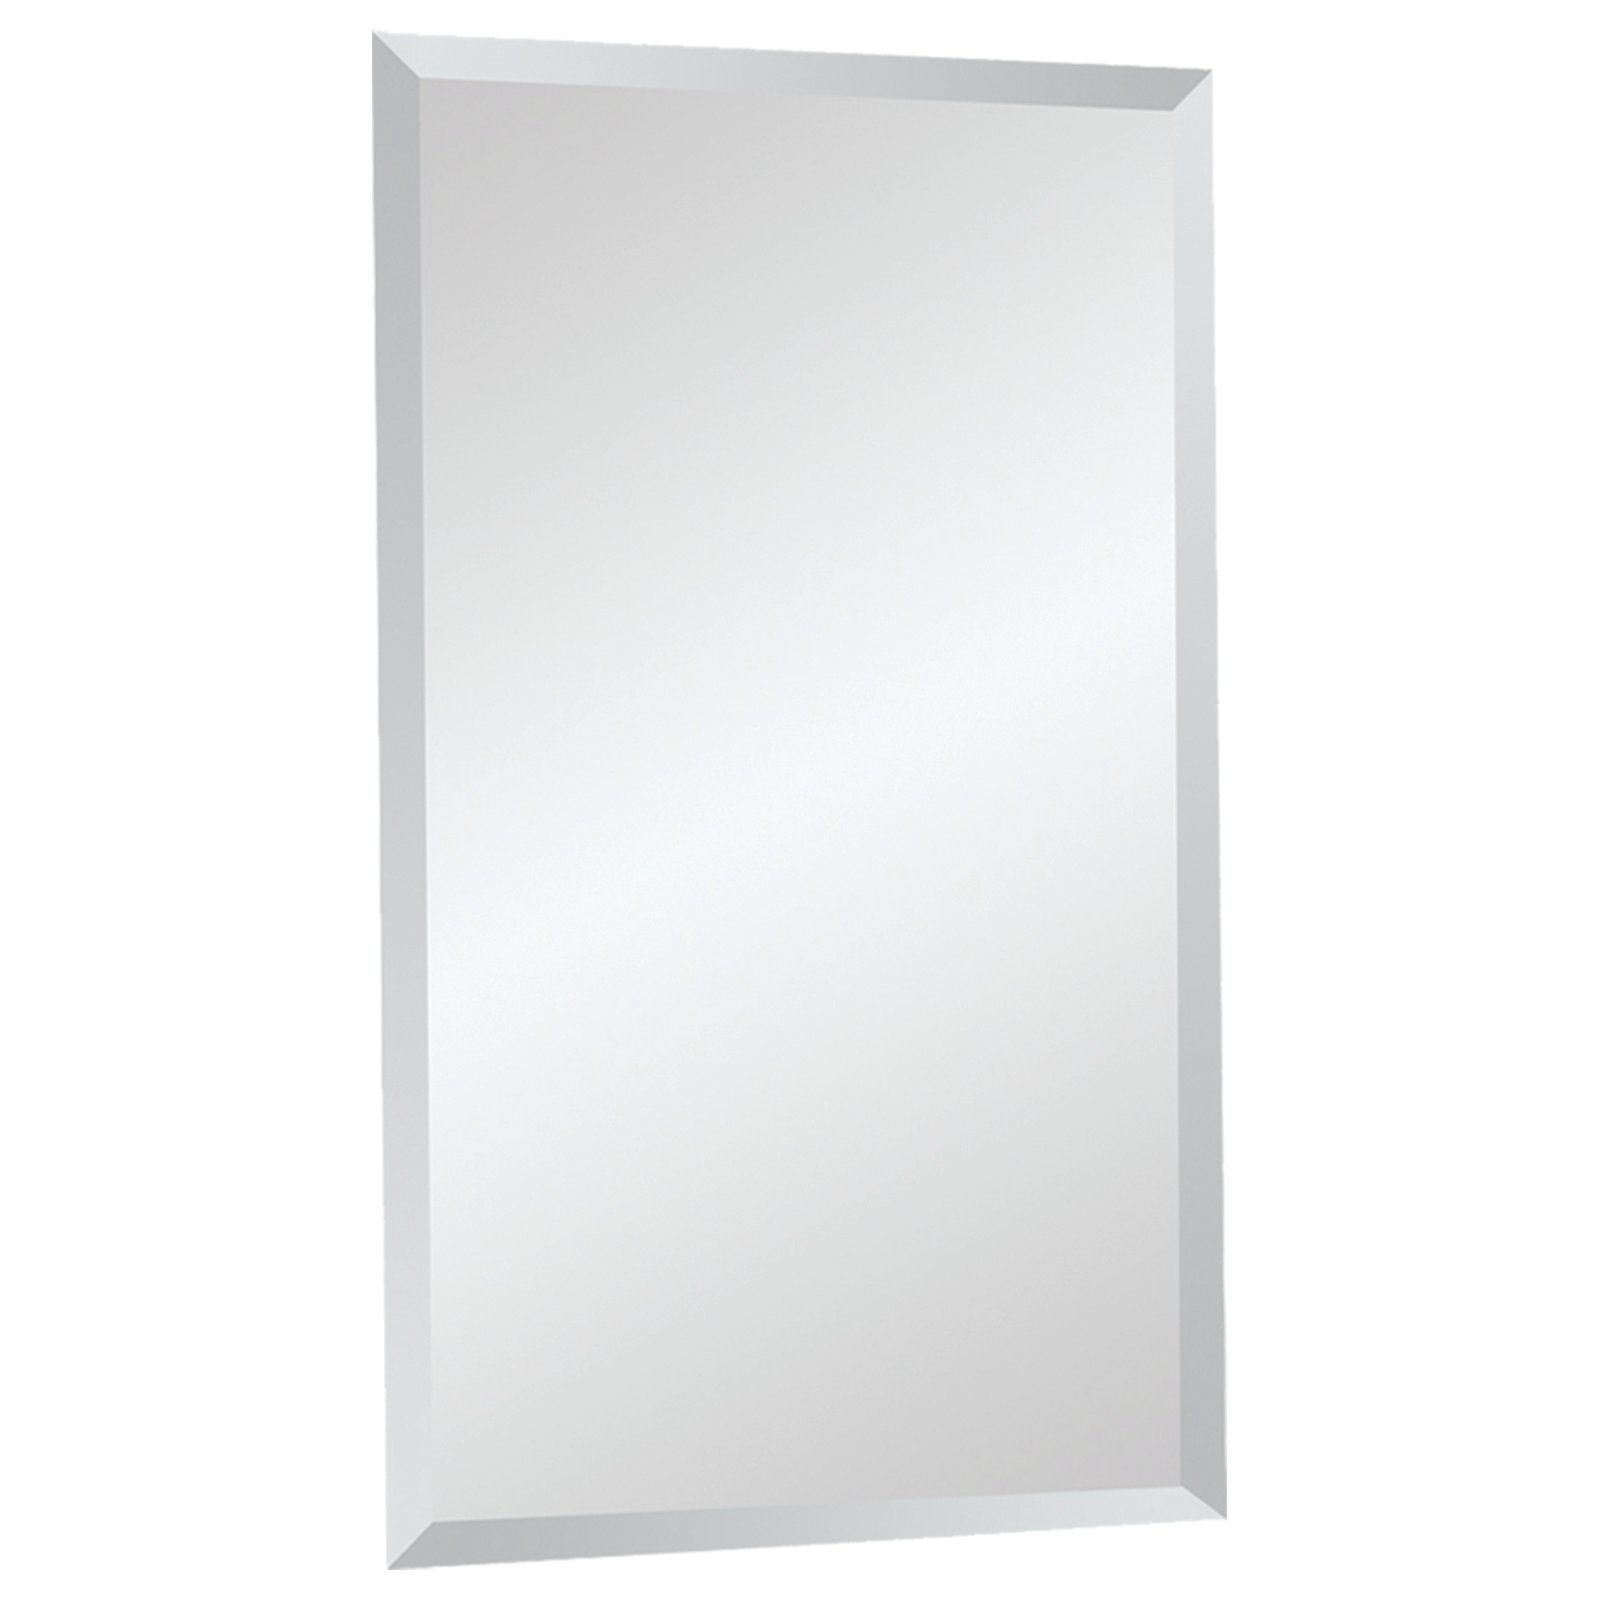 Frameless Mirrors Youll Love Wayfair Pertaining To Where To Buy Mirrors Without Frames (View 5 of 15)